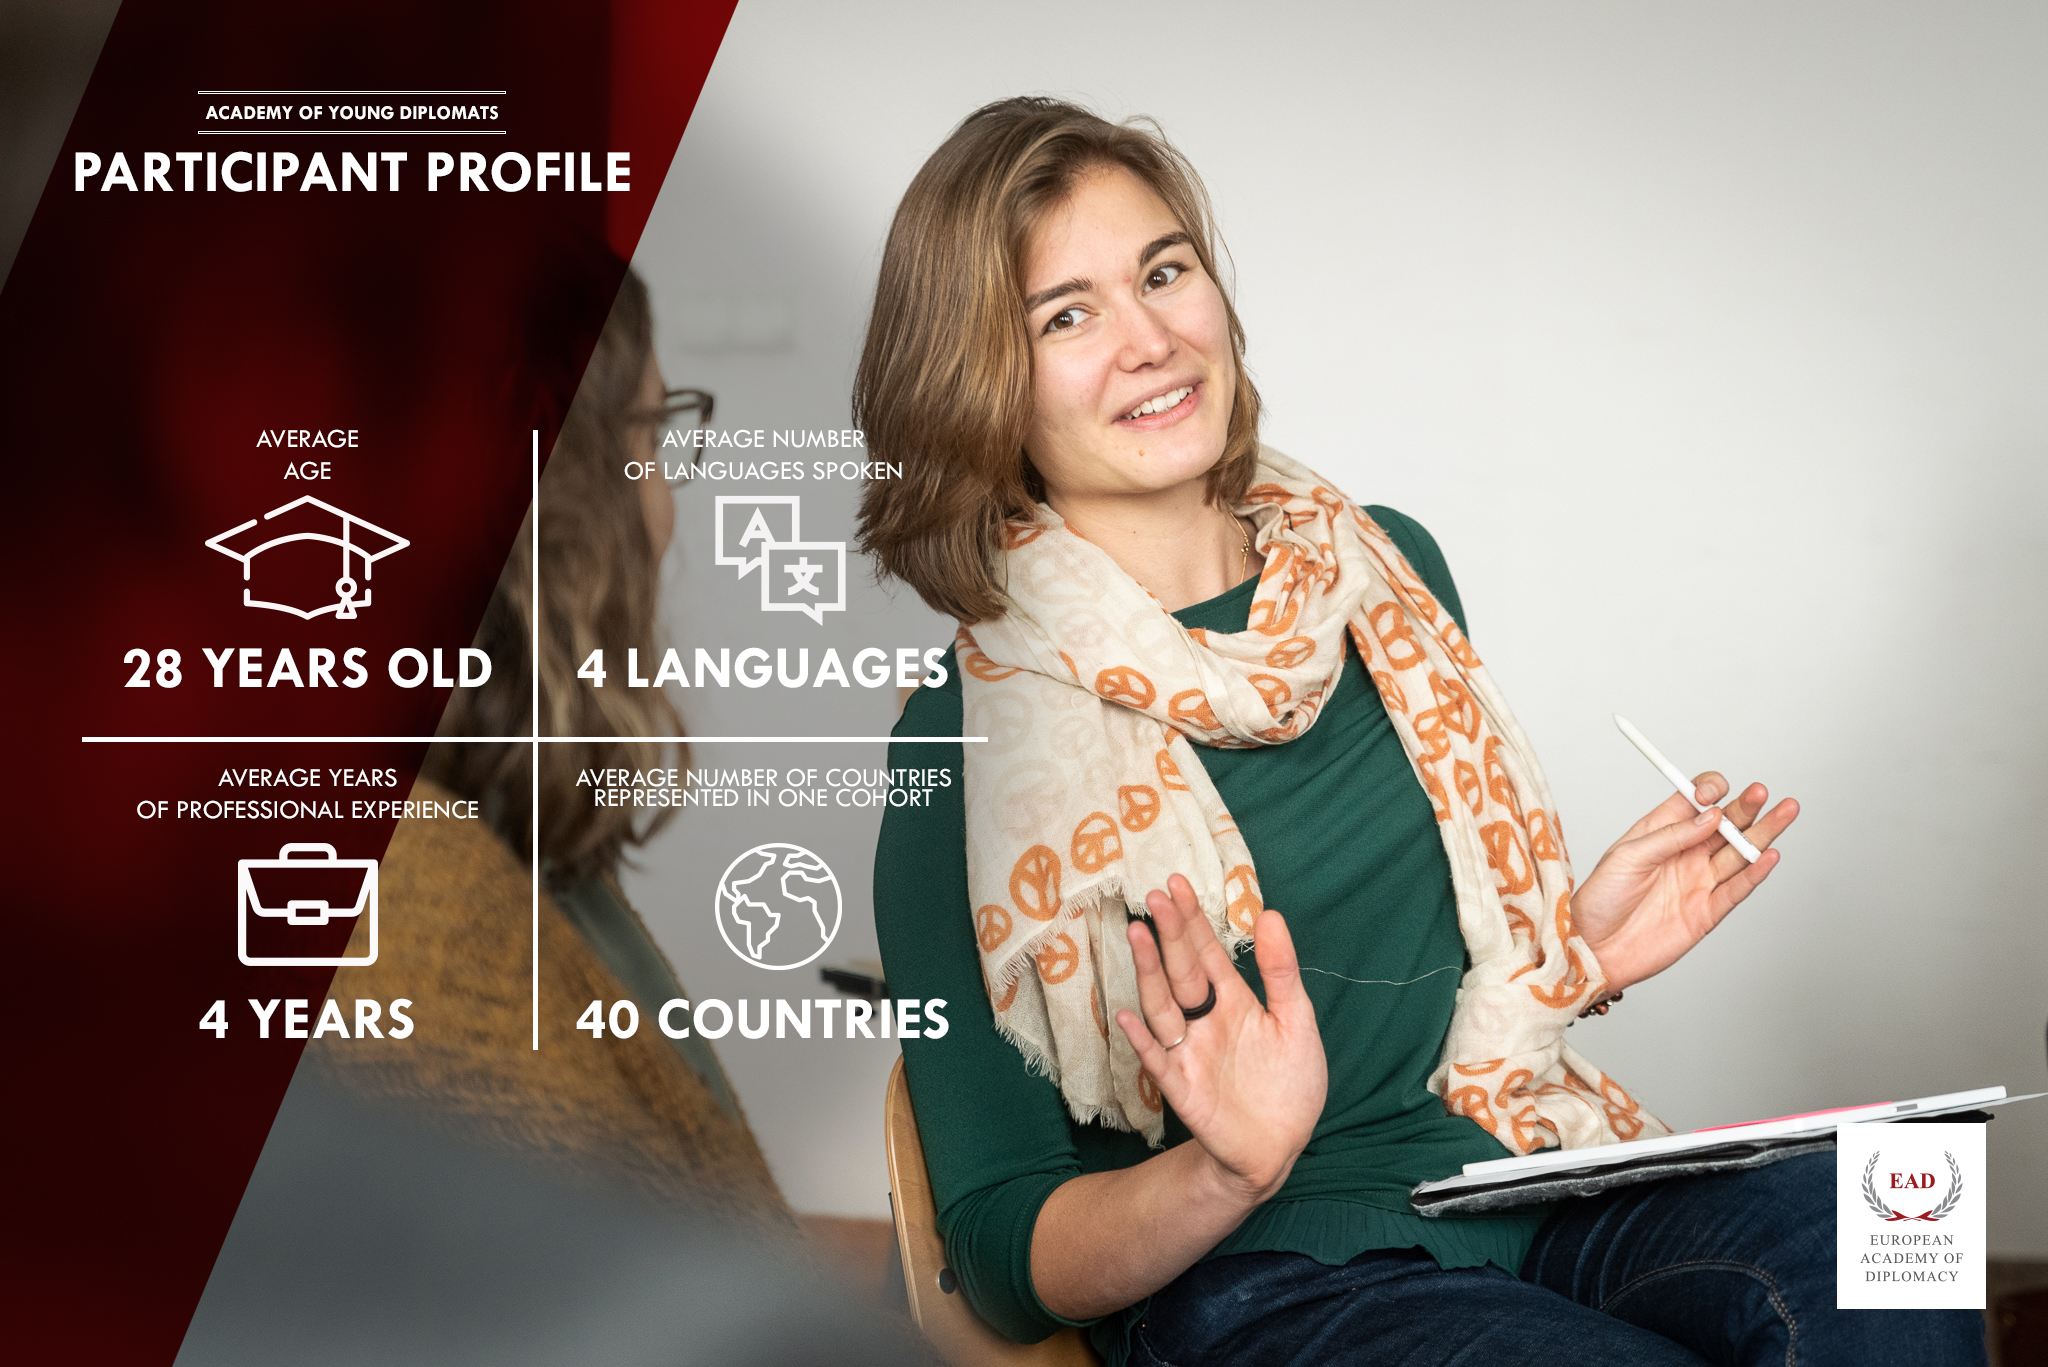 Apply and obtain international experience with AYD!